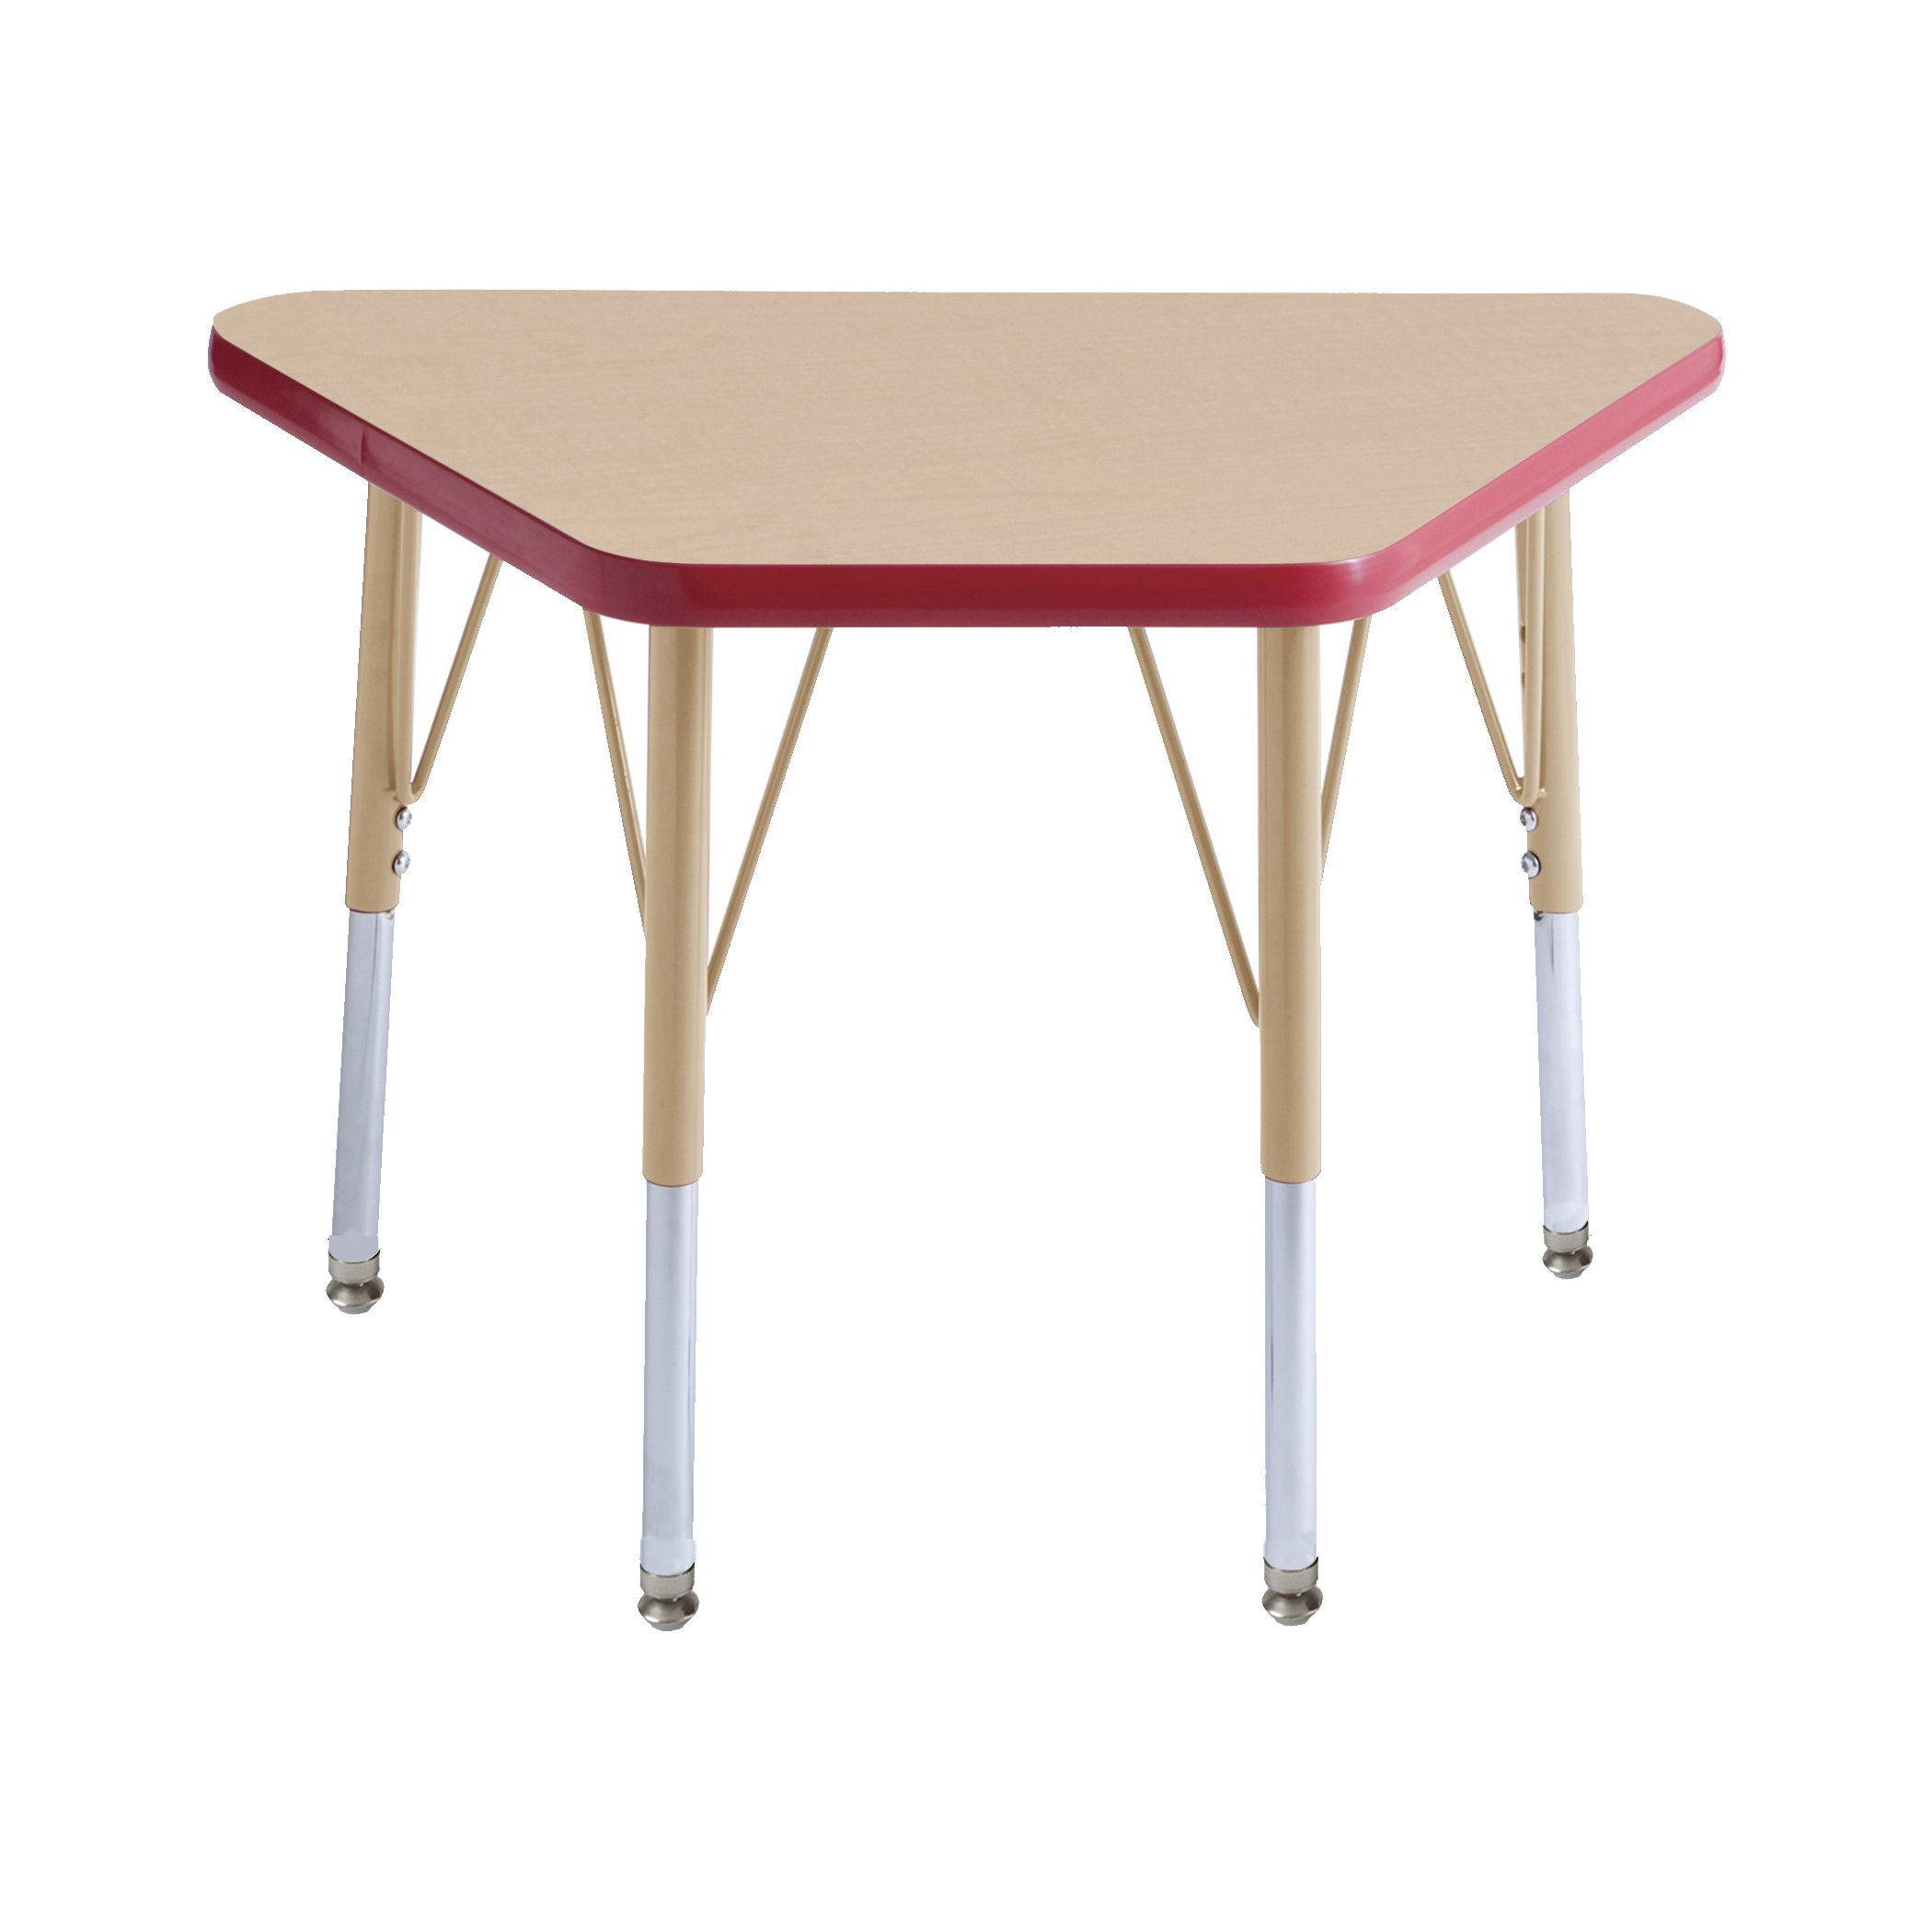 ECR4Kids Everyday T-Mold 18'' x 30'' Trapezoid Activity School Table, Toddler Legs w/Swivel Glides, Adjustable Height 15-23 inch (Maple/Red/Sand)